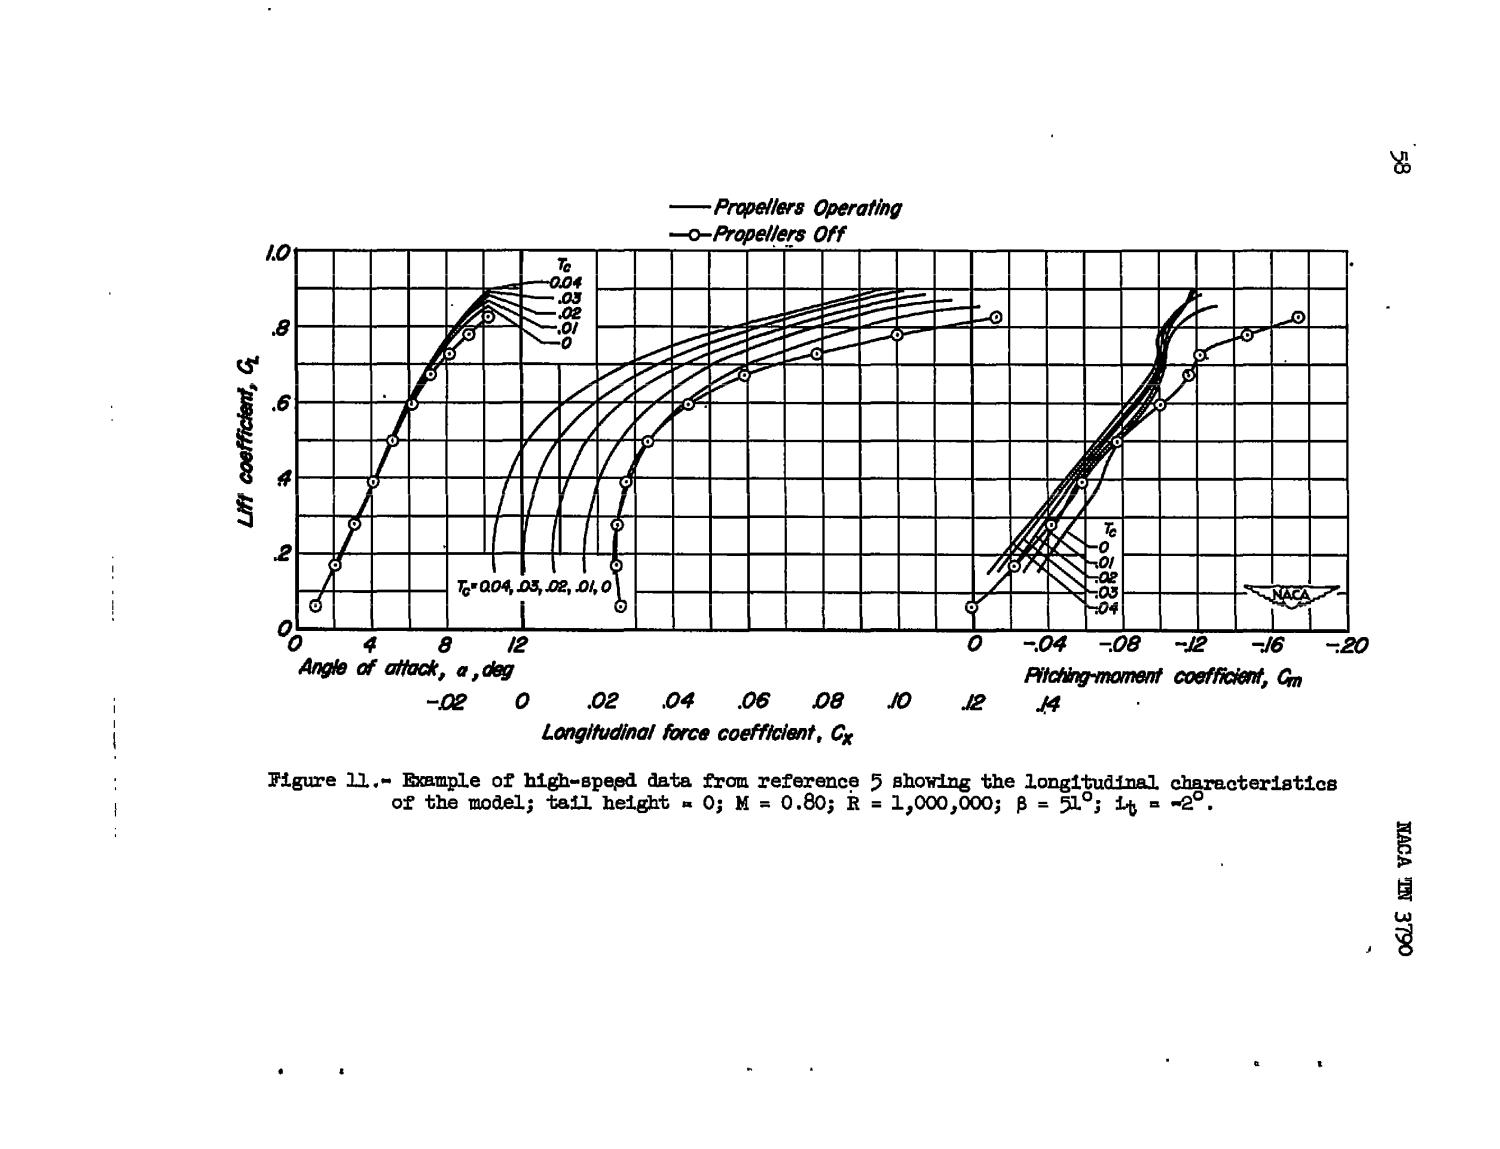 Analysis of Wind-Tunnel Tests to a Mach Number of 0.90 of a Four-Engine Propeller-Driven Airplane Configuration Having a Wing With 40 Degrees of Sweepback and an Aspect Ratio of 10                                                                                                      [Sequence #]: 59 of 171